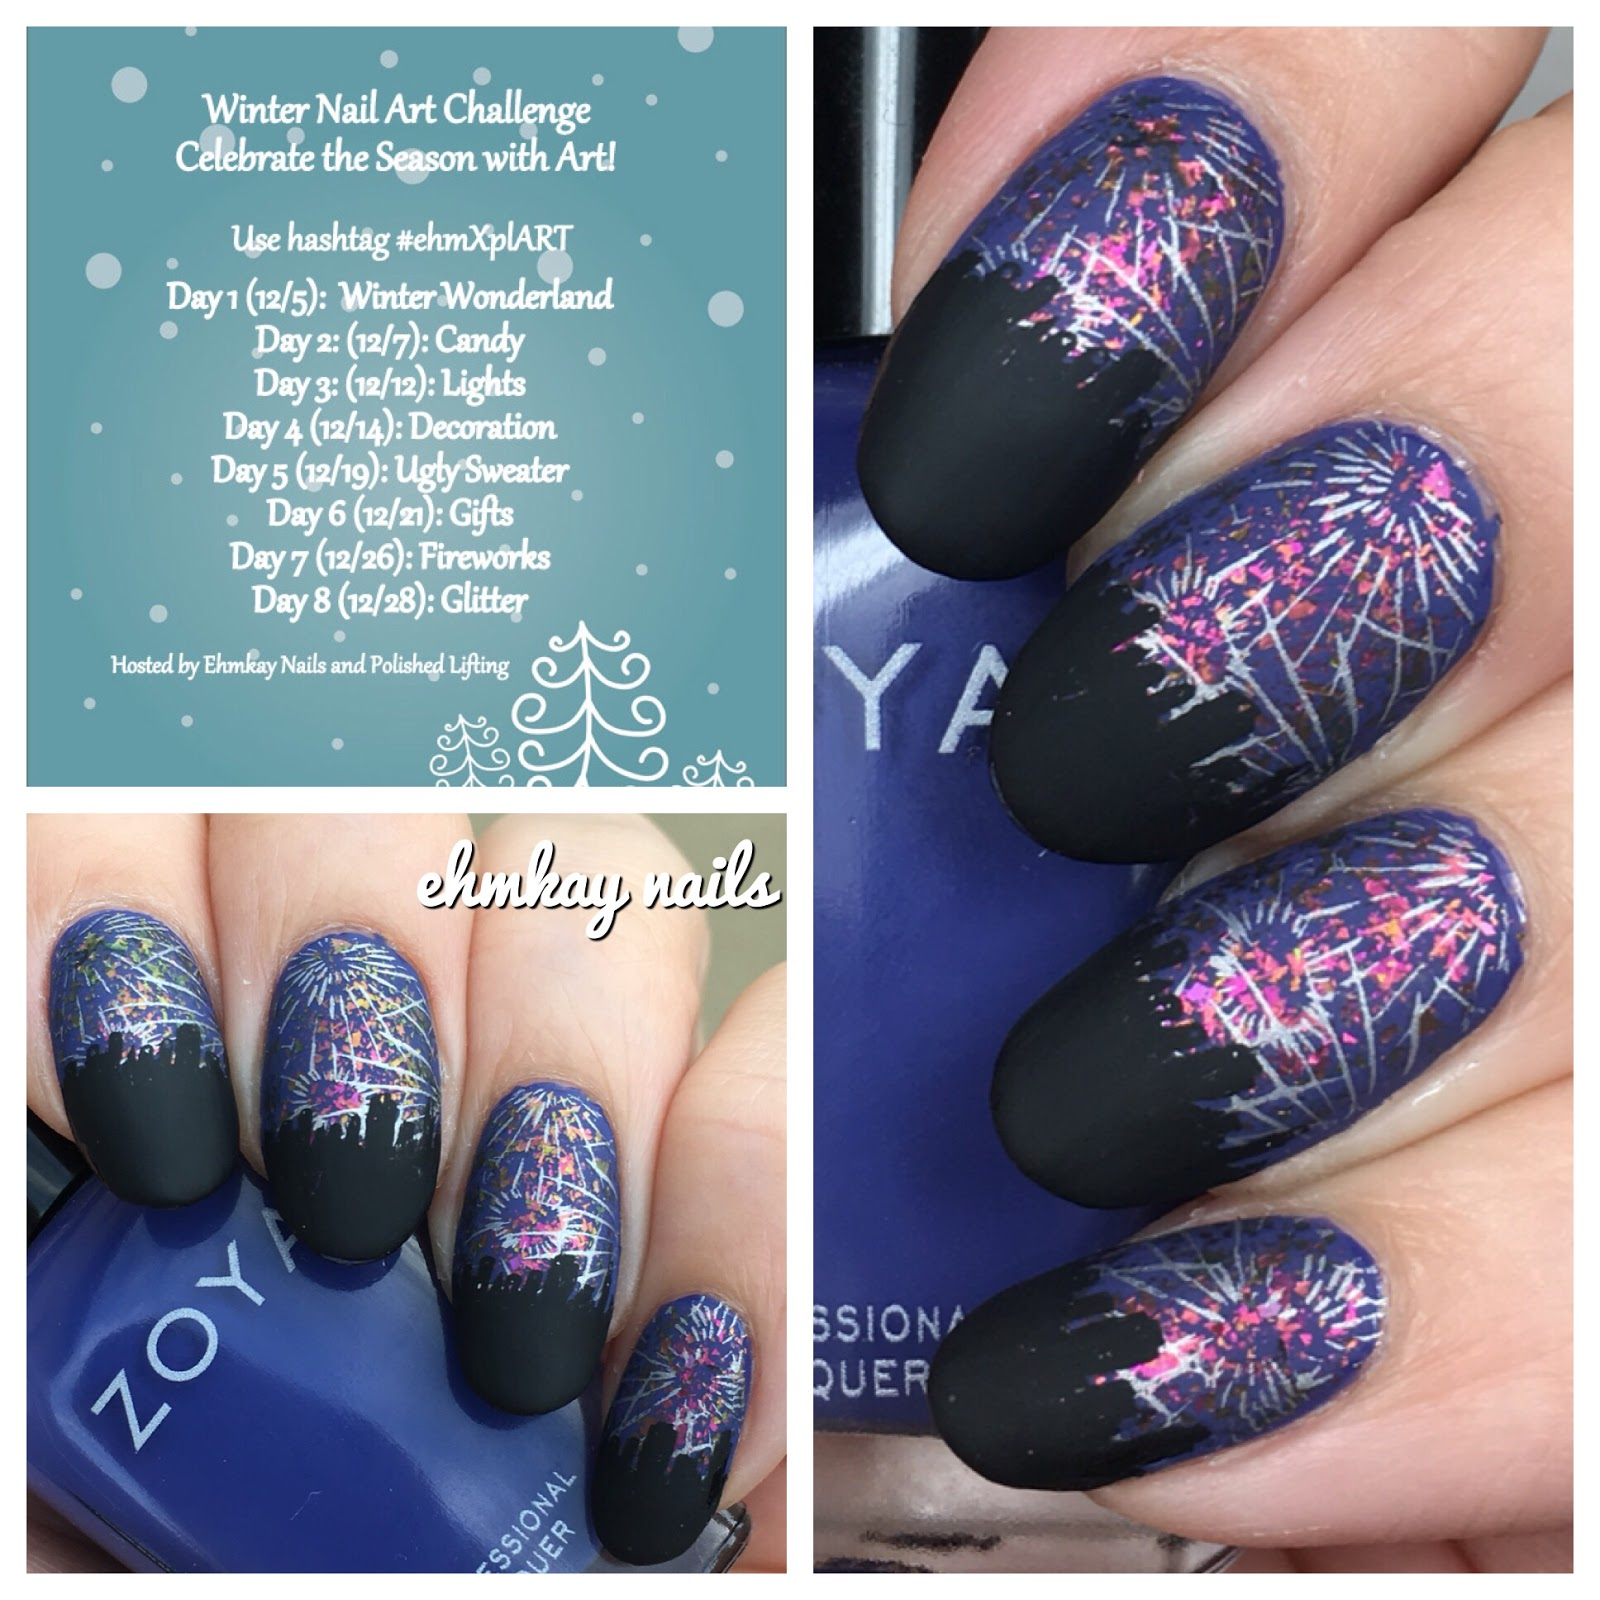 Ehmkay Nails Winter Nail Art Challenge Fireworks Over The City